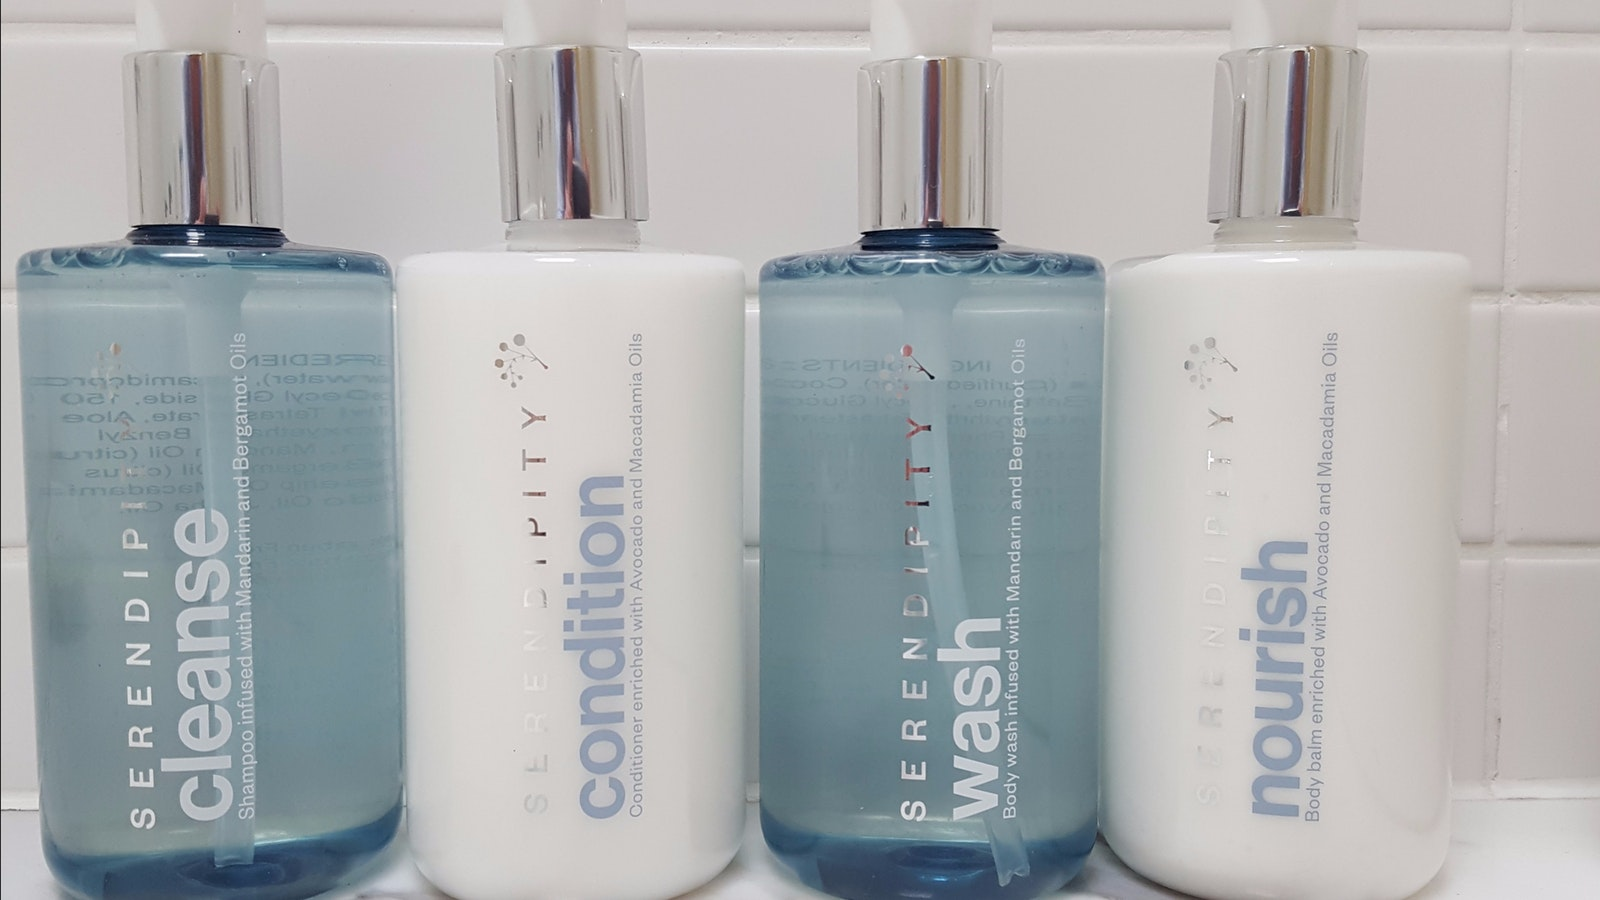 The Australian made toiletries are eco friendly and paraben free - caring for you and environment